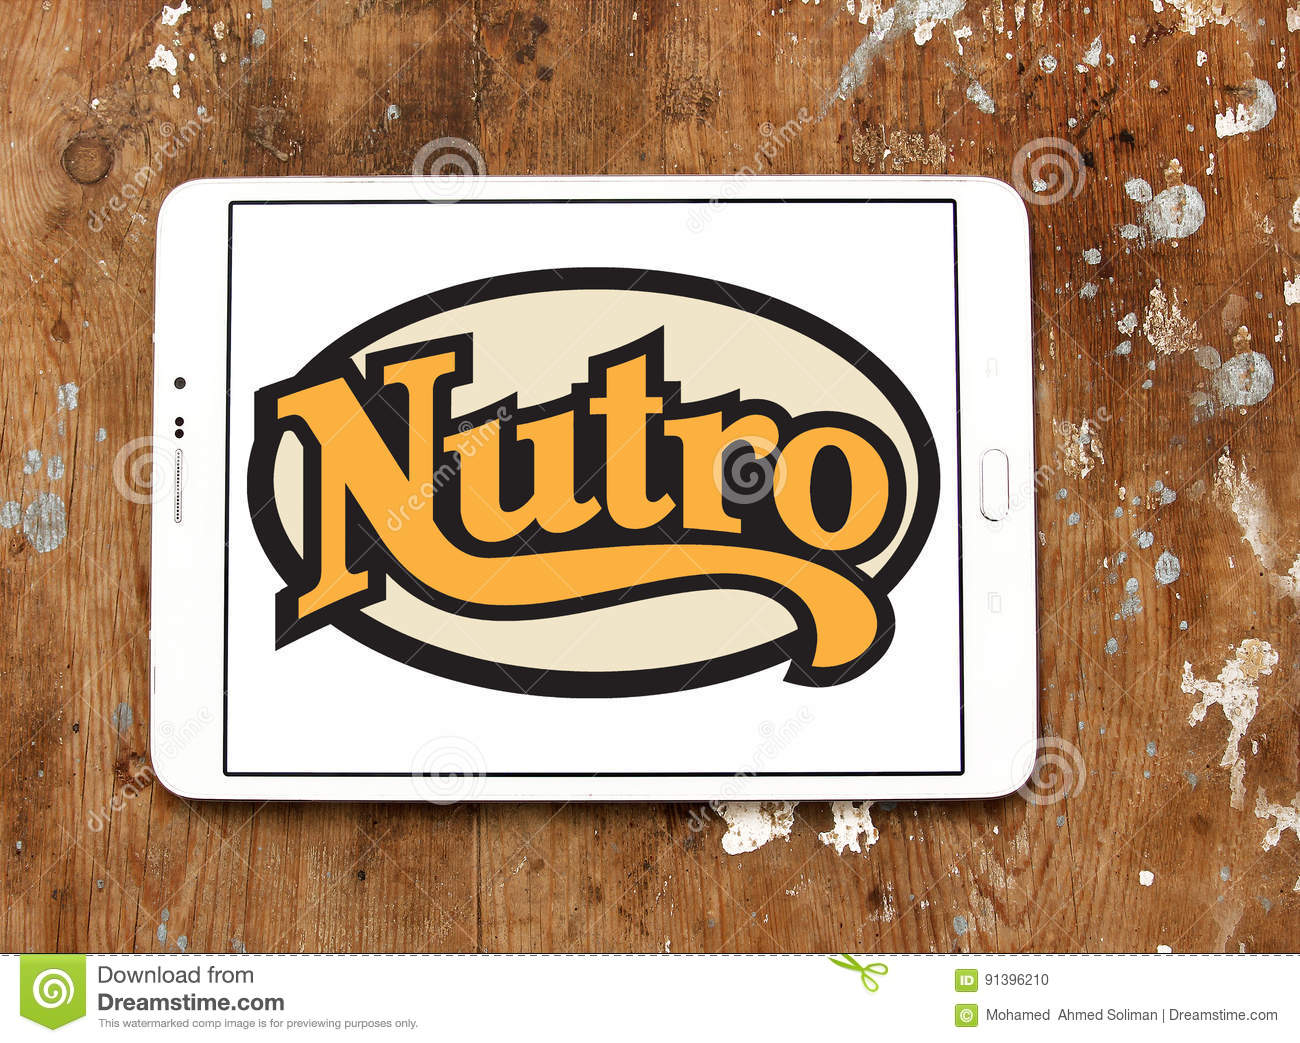 nutro-pet-food-logo-company-samsung-tablet-wooden-background-91396210